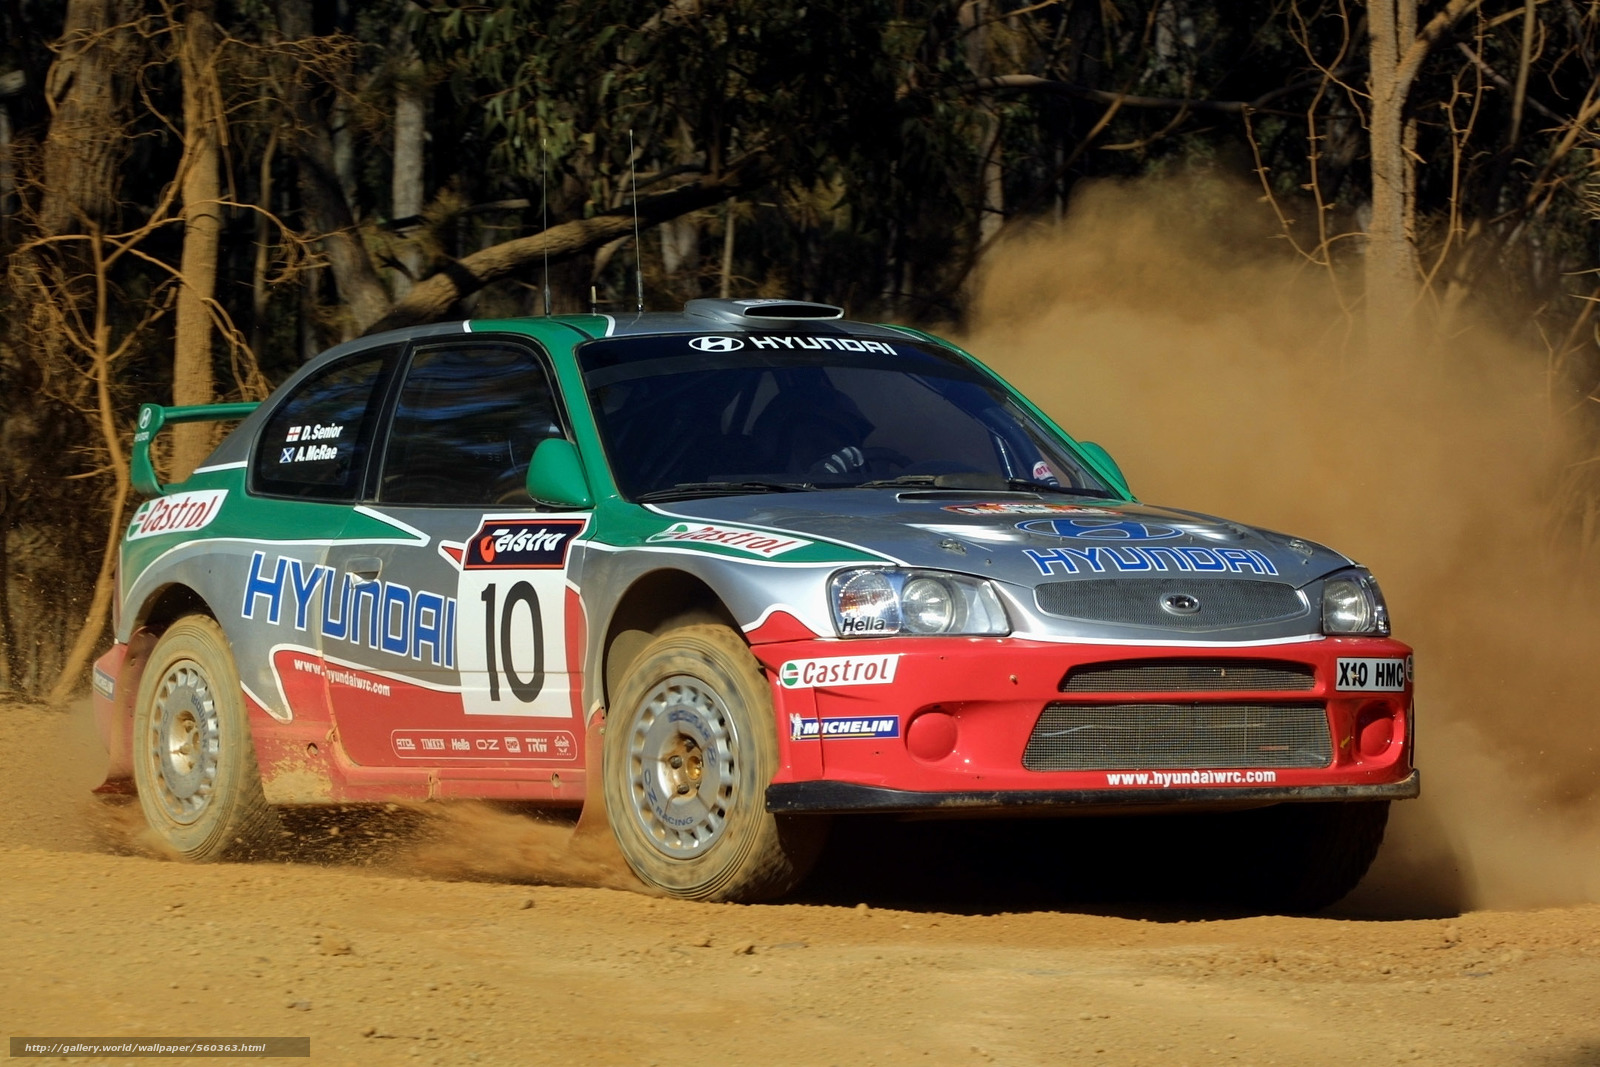 Download wallpaper hyundai accent wrc 2001 free desktop wallpaper in the resolution 2160x1440 picture 560363